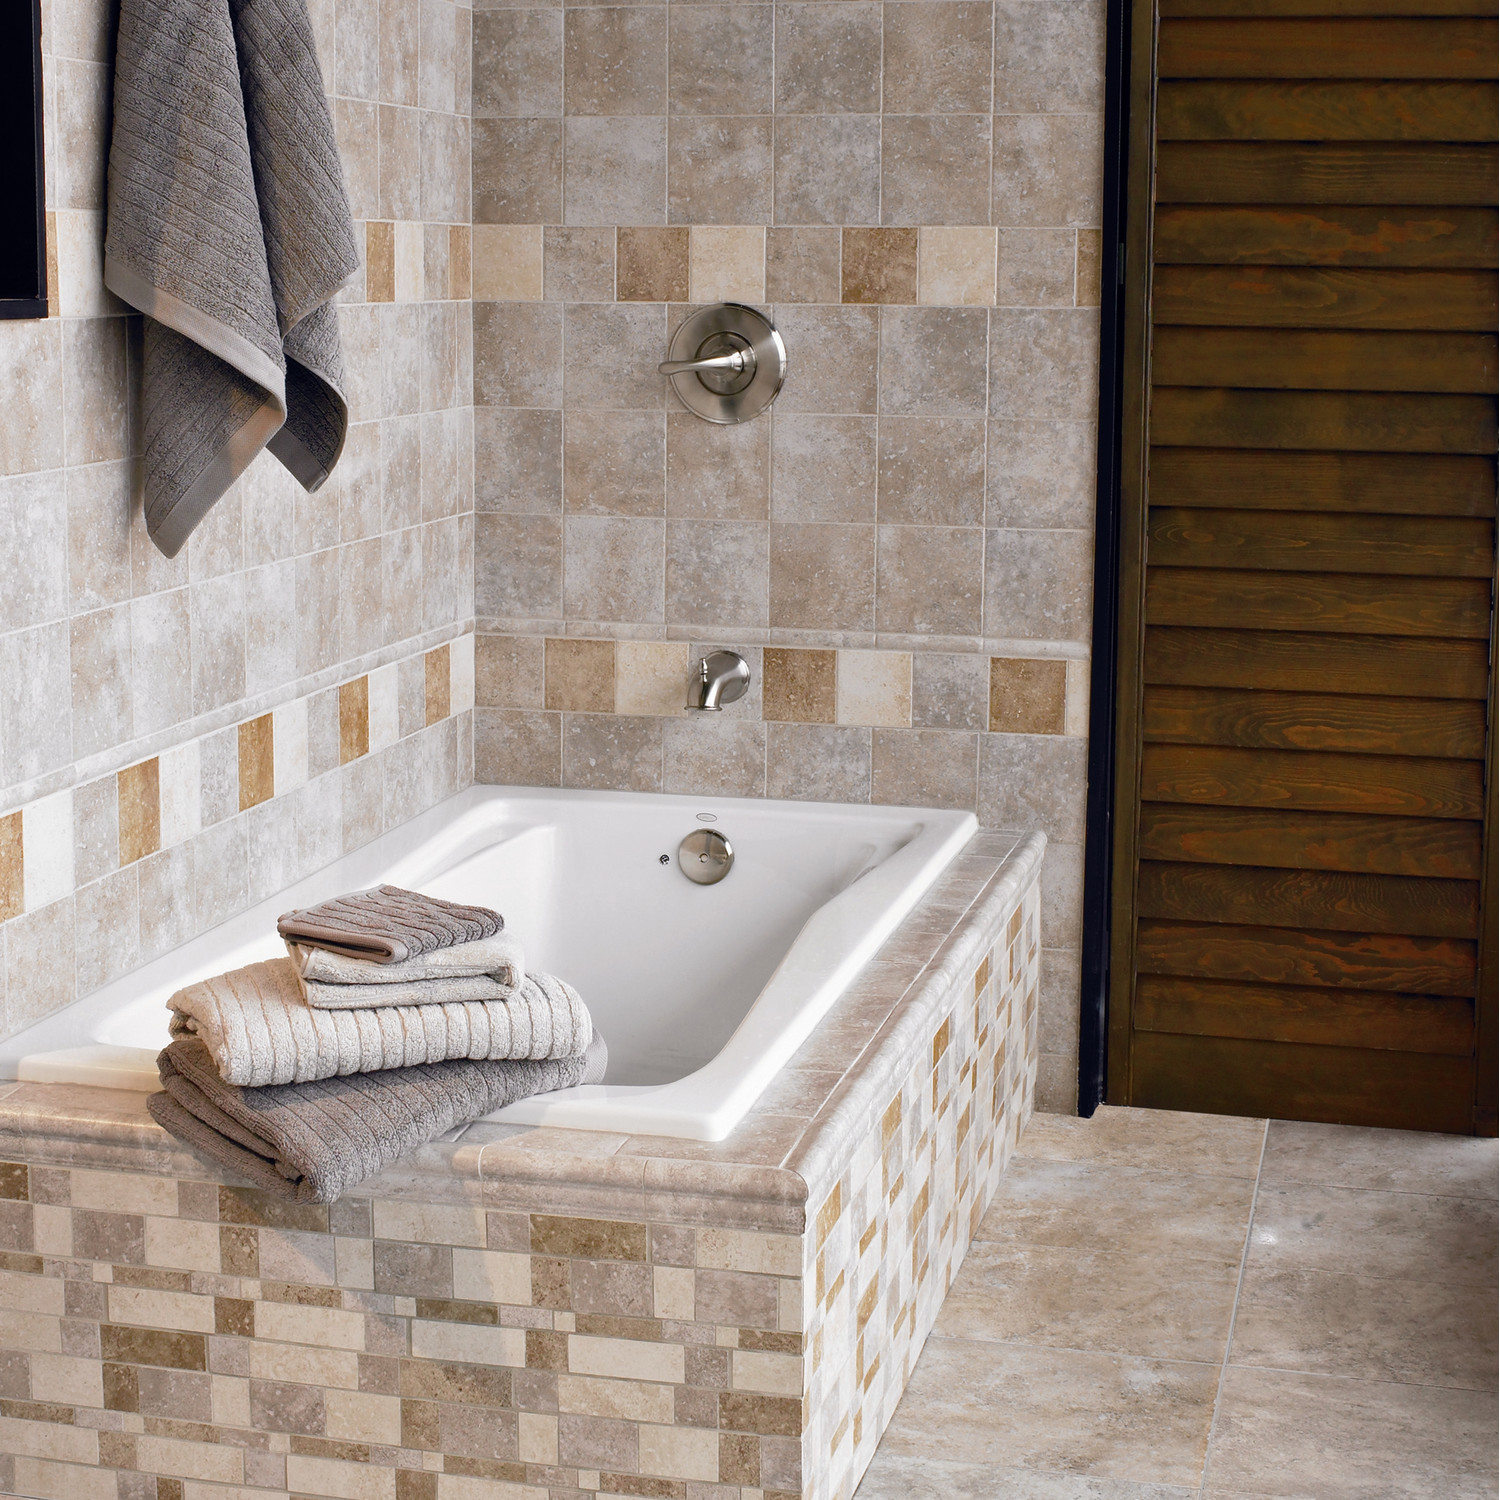 Montreaux Ceramic Floor Tile in Gris by interceramic tile plus buthup for bathroom decor ideas